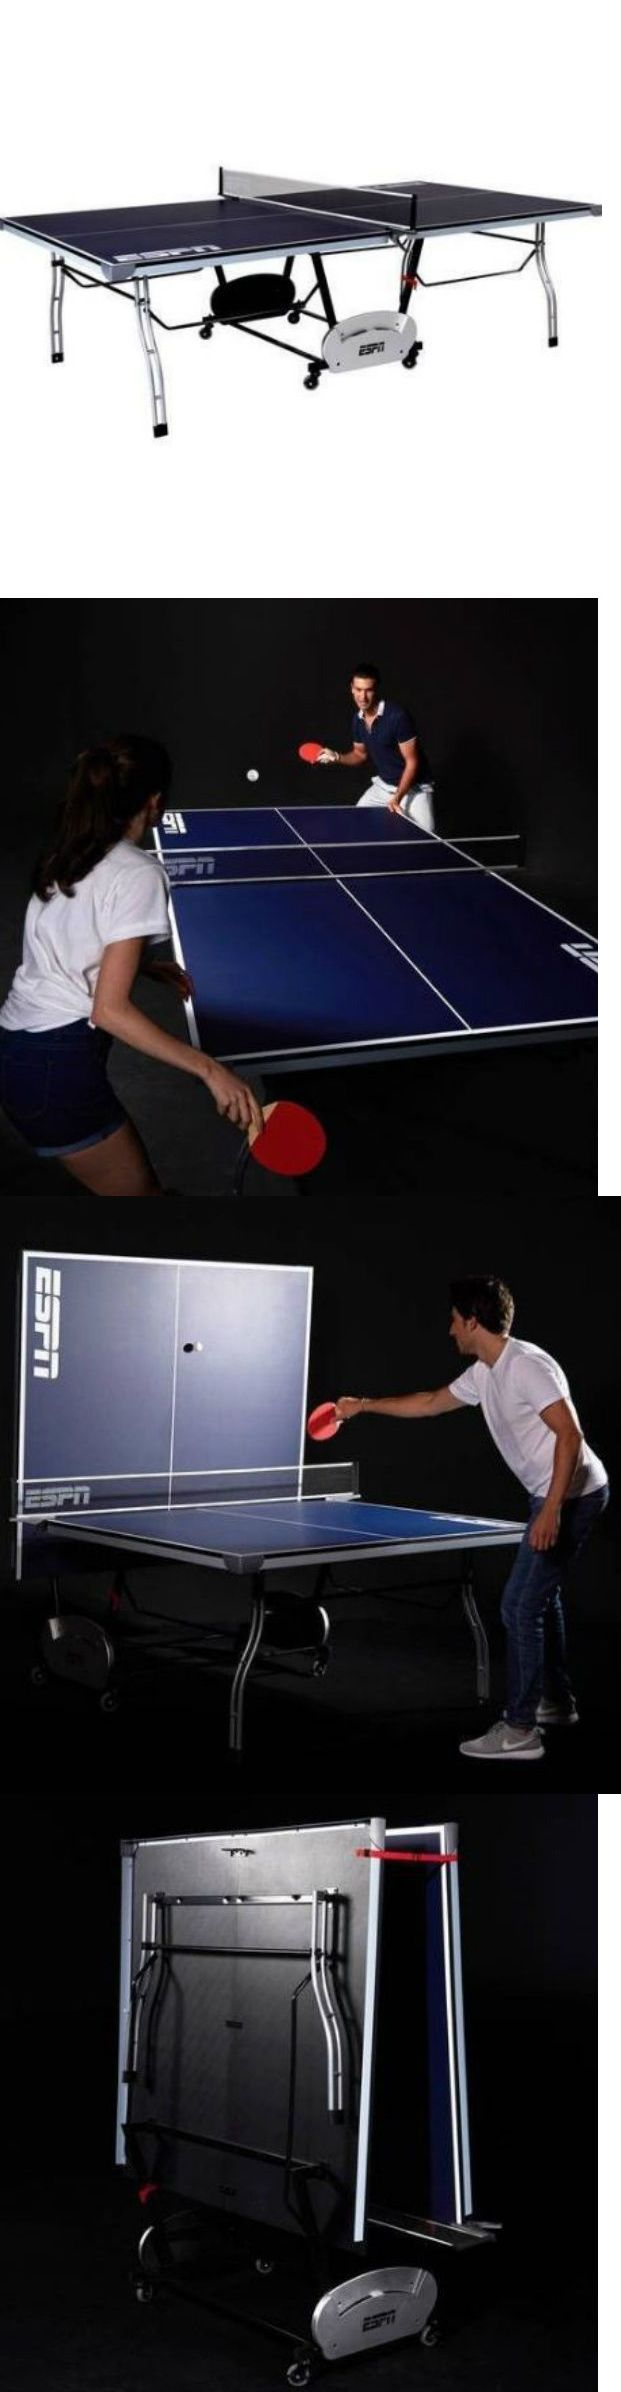 Tables 97075: Game Room Table Tennis Fold Up Sports Billiard Outdoor Portable Tournament Espn -> BUY IT NOW ONLY: $237.9 on eBay!